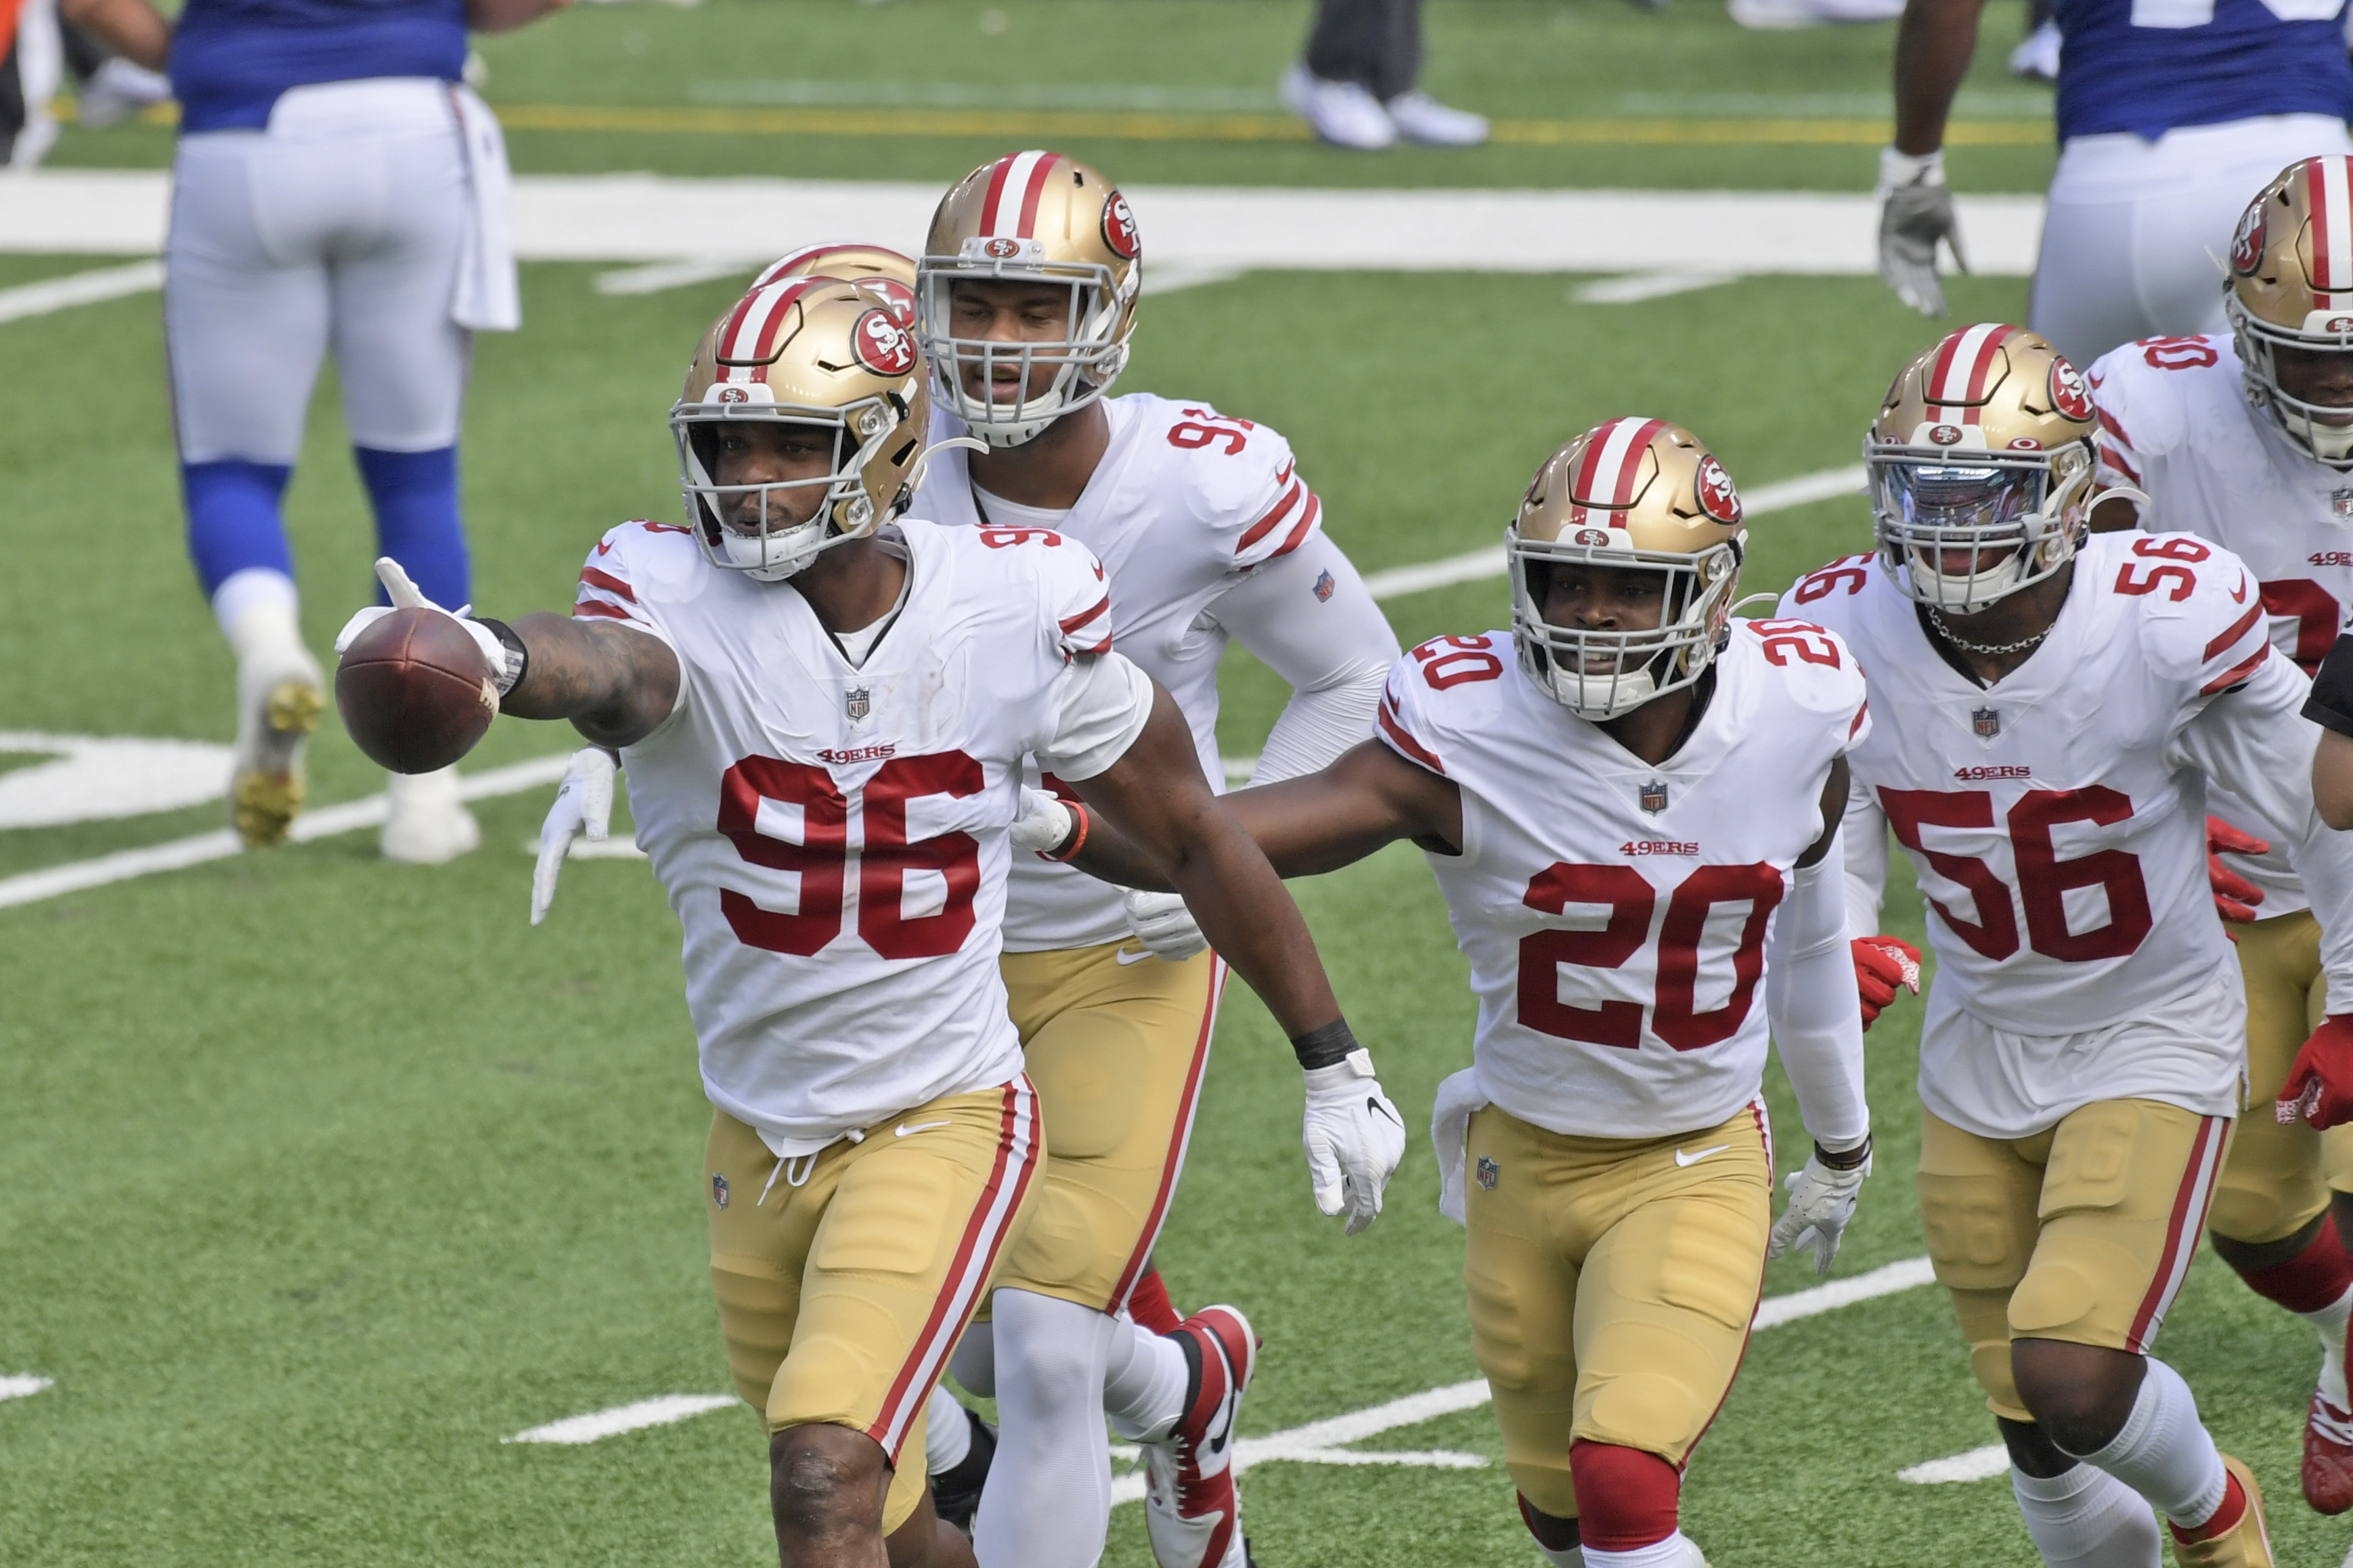 Watch: Former Oregon Duck Dion Jordan recovers fumble, posts sack in first  game with the San Francisco 49ers - oregonlive.com